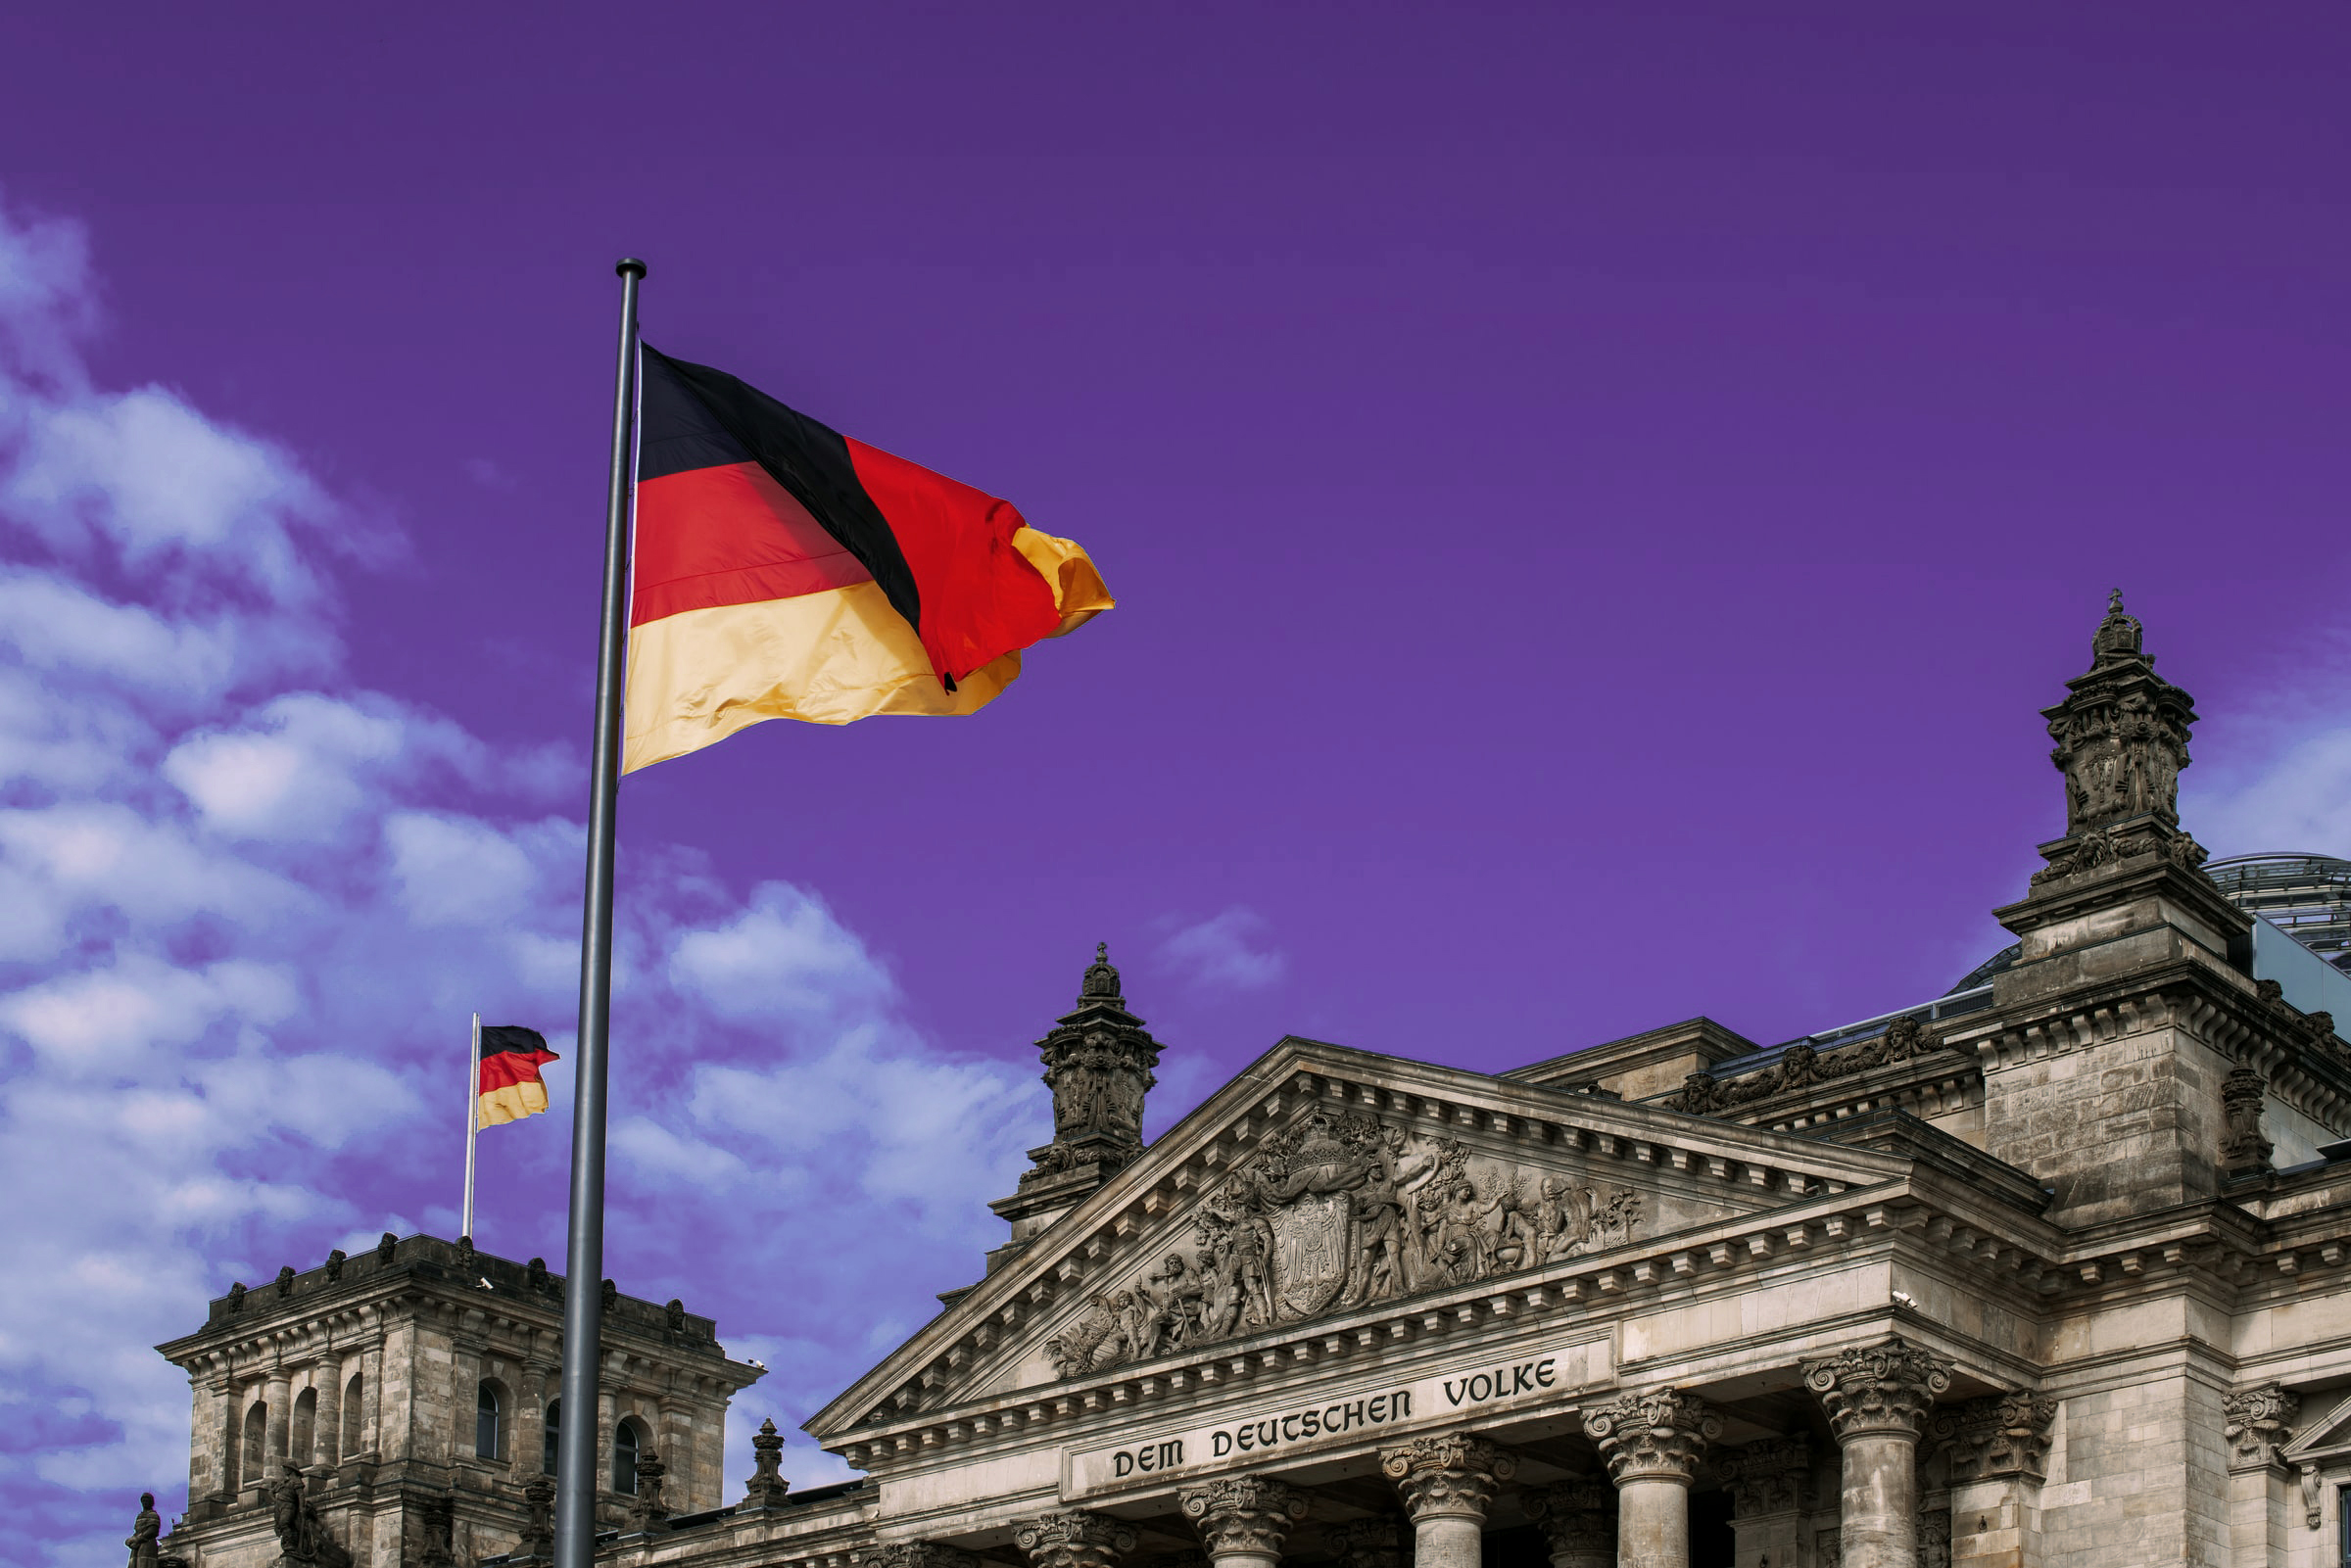 A good first step: Germany adopts law banning IGM. But there is still room for improvement